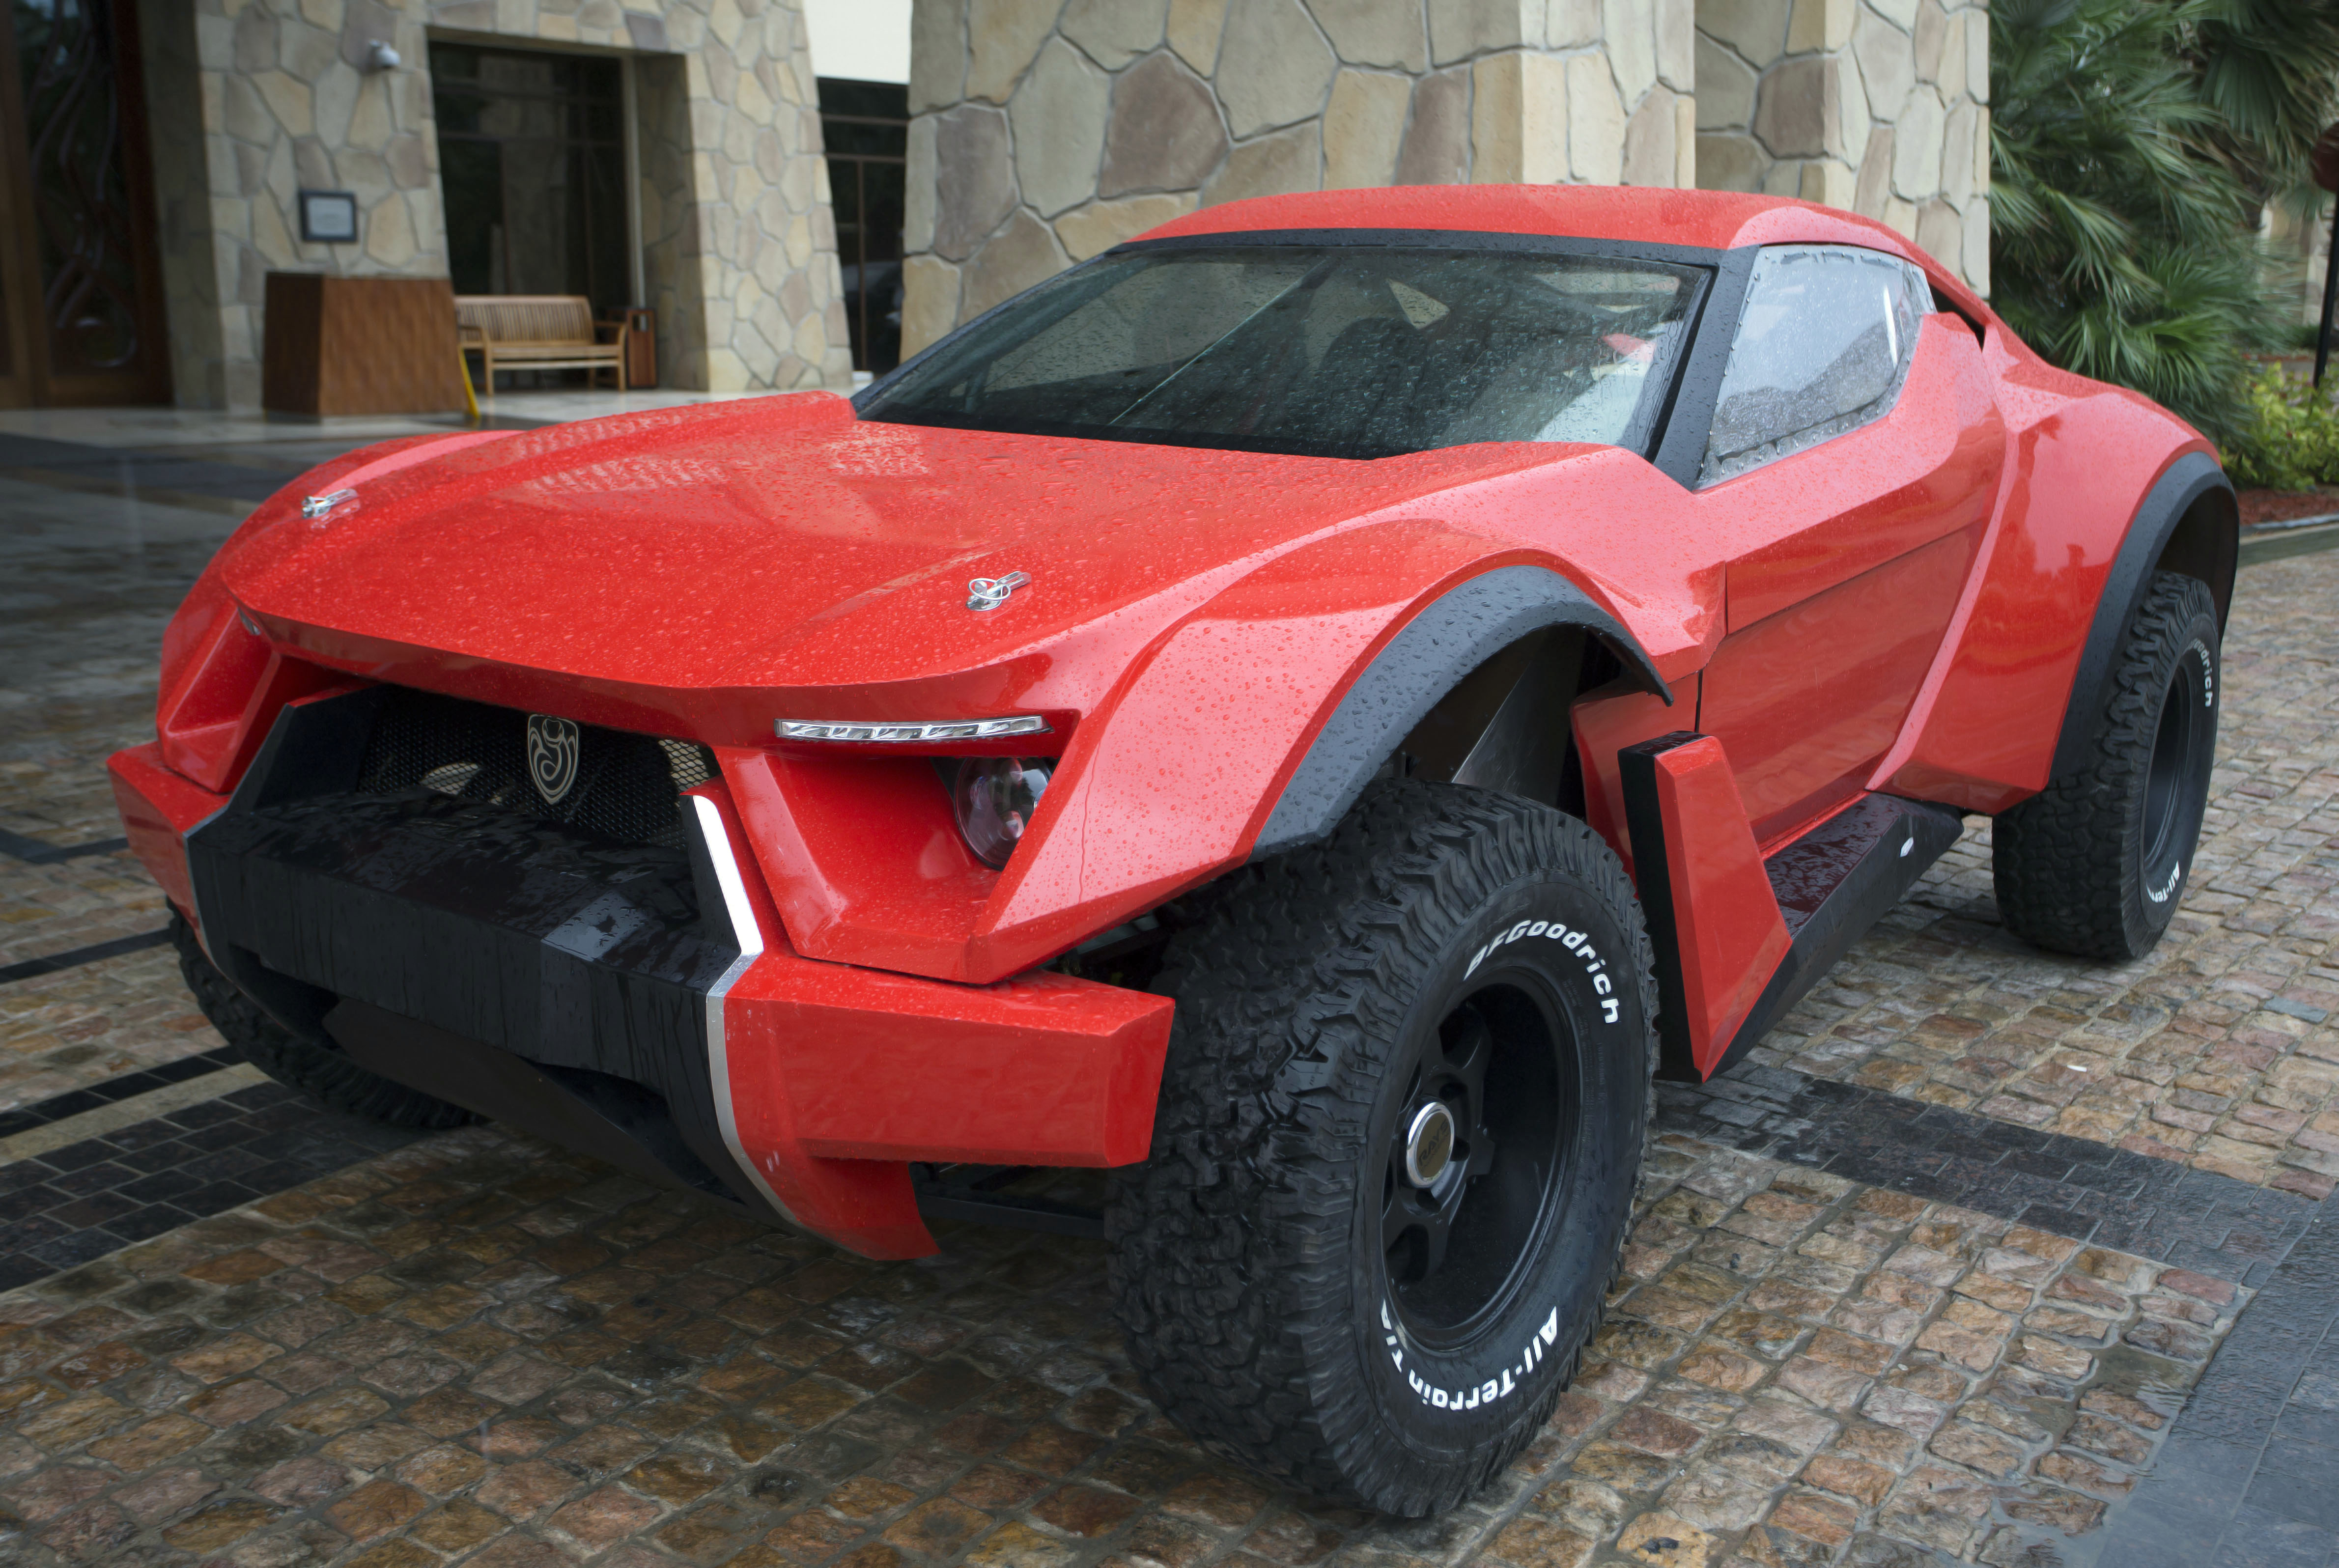 Exclusive First Pictures Of Zarooq Sand Racer Built In